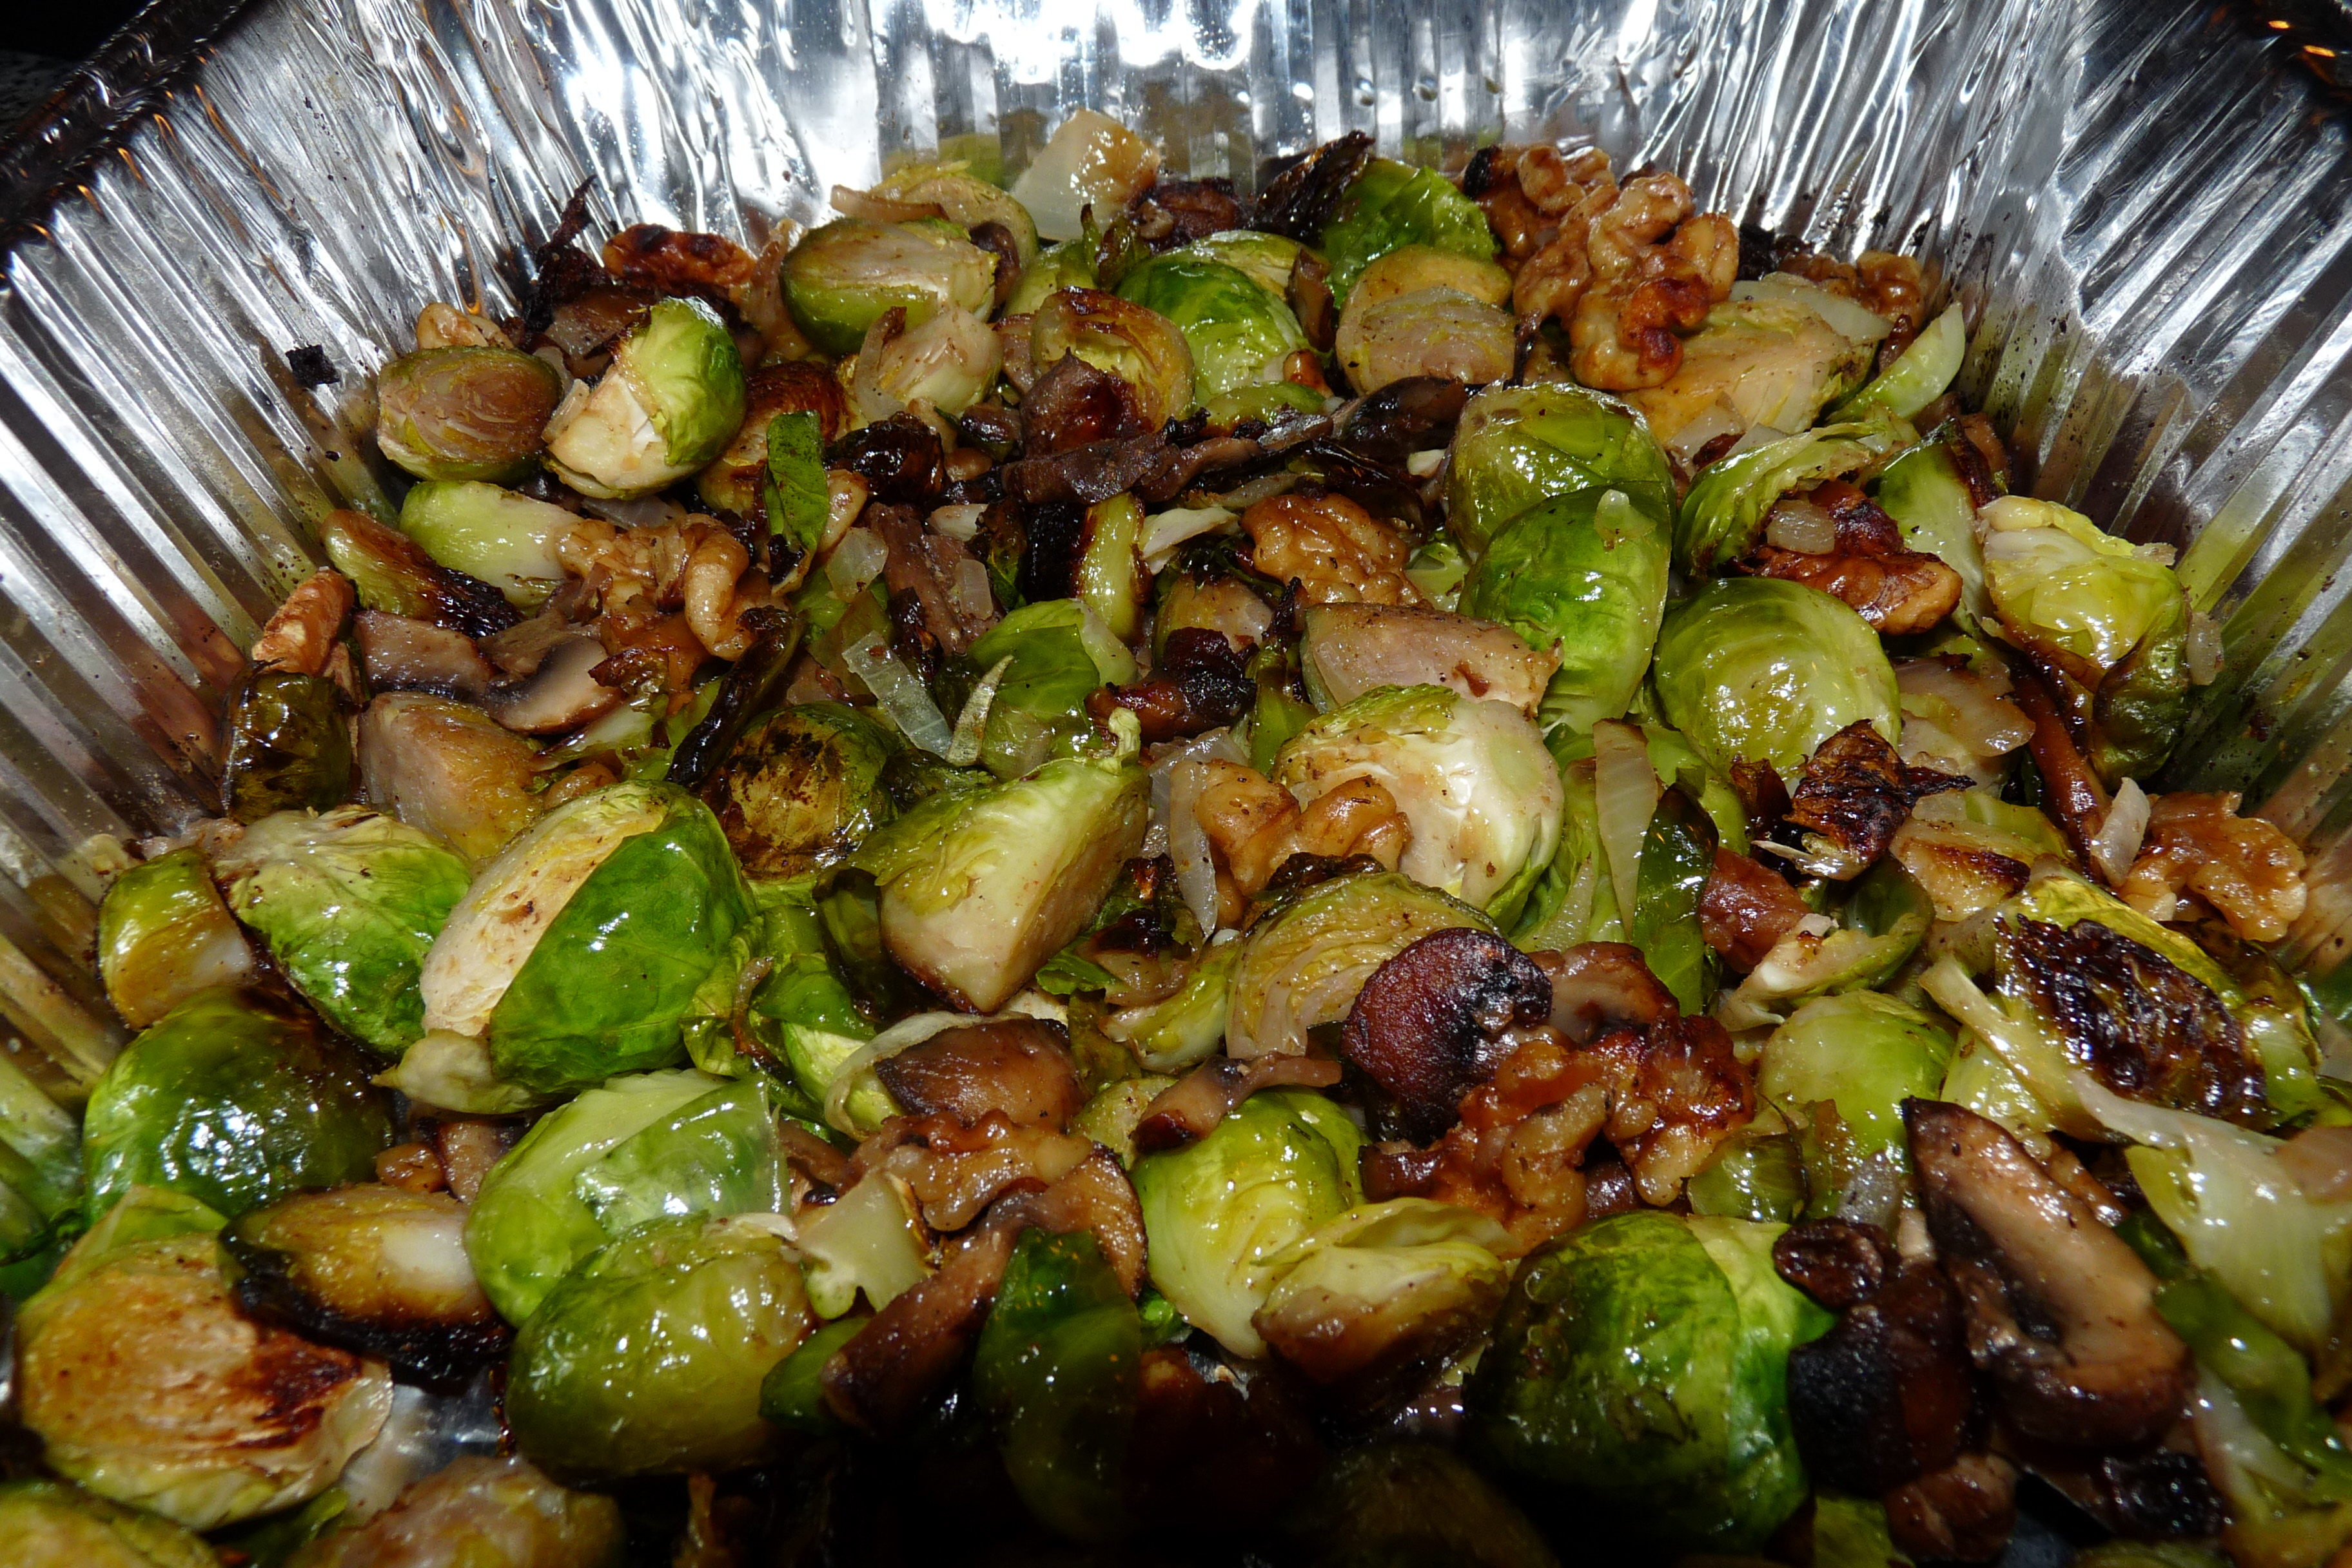 Roasted Brussels Sprouts with Buttered Walnuts